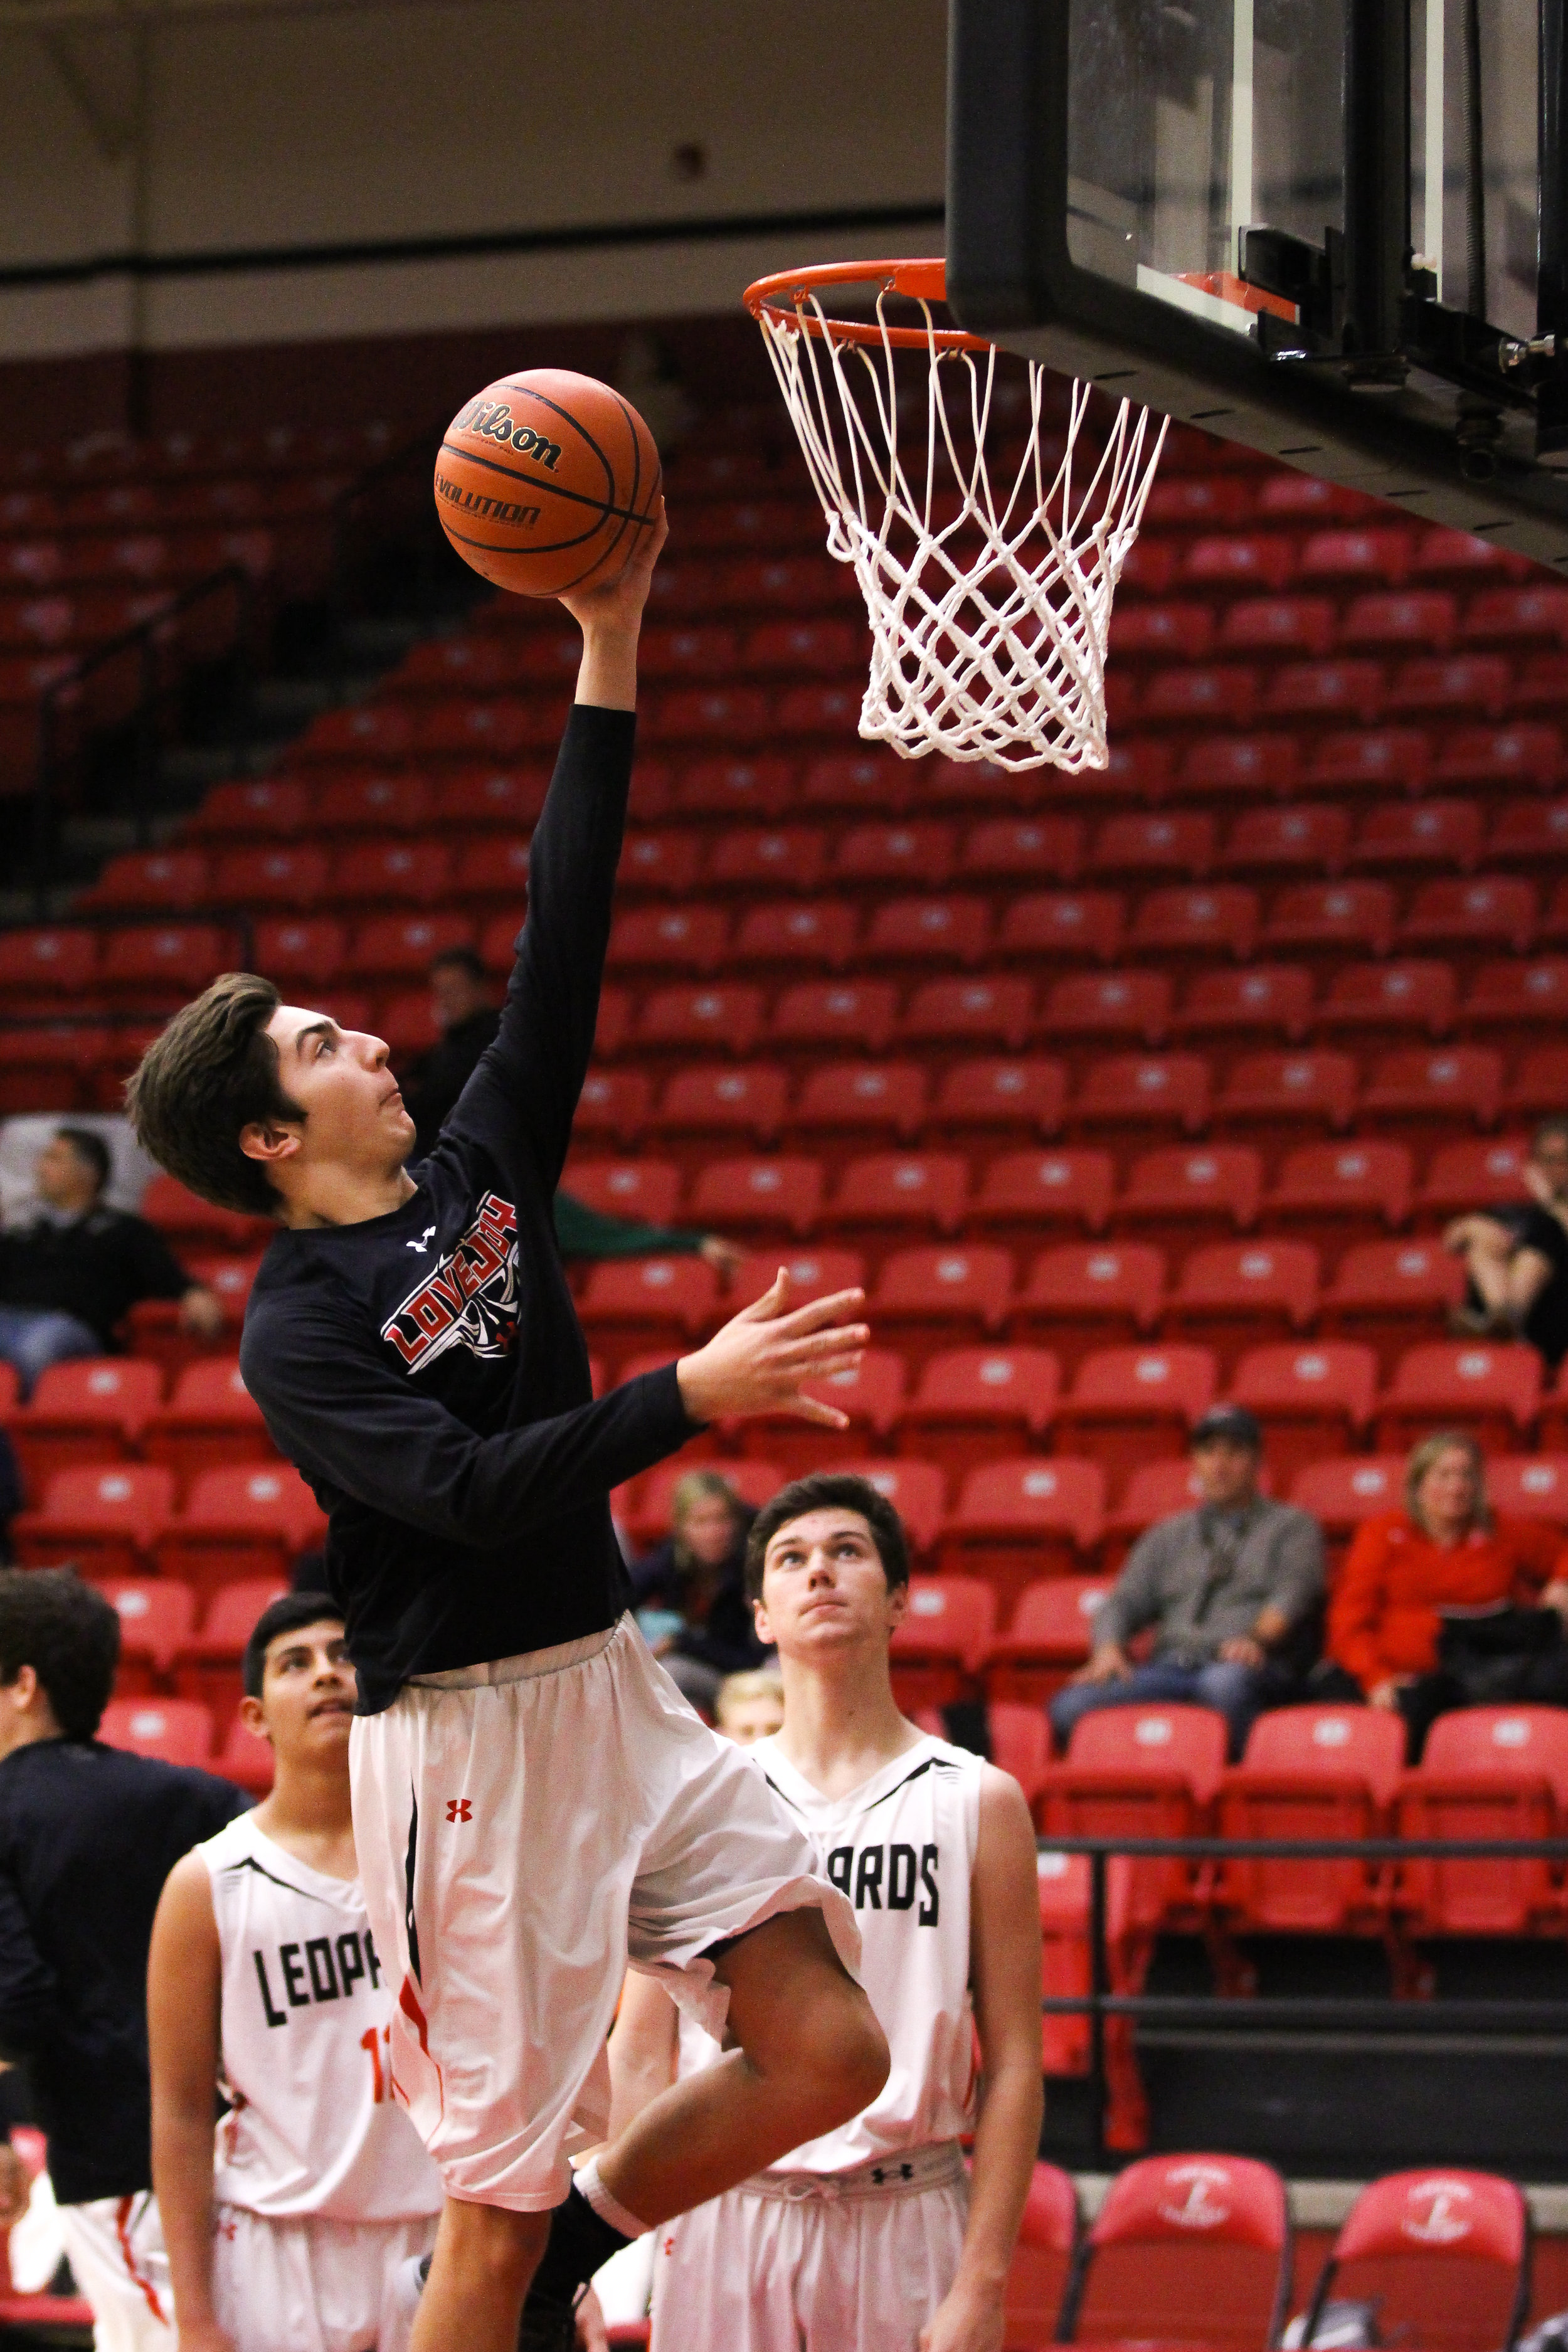 1 - Drew Bliven (33) sets up for a layup during warmups as he prepares for the game against Celina..jpg